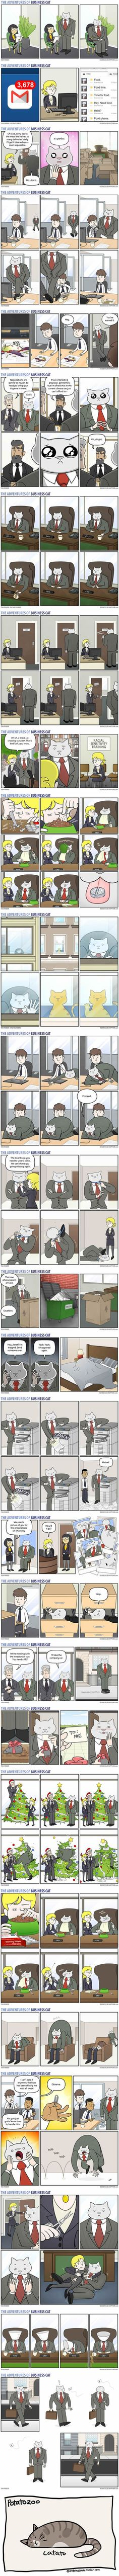 27 comics showing this is how your office would look if your boss was a cat - Tap the link now to see all of our cool cat collections!